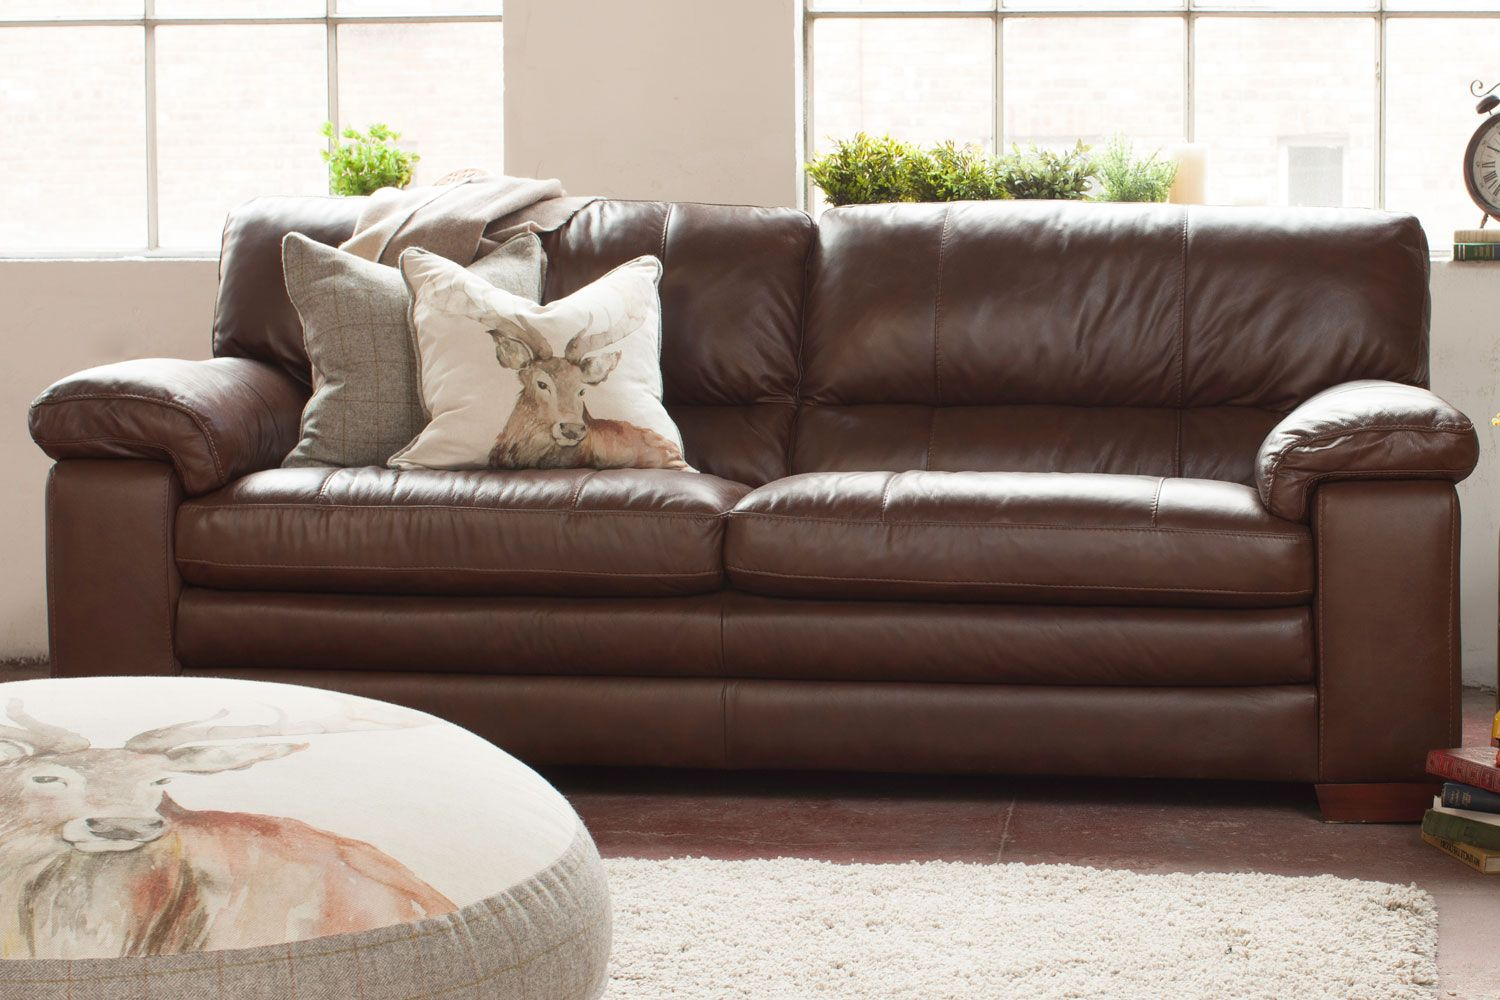 Luxor 3 Seater Leather Sofa At Harvey Norman